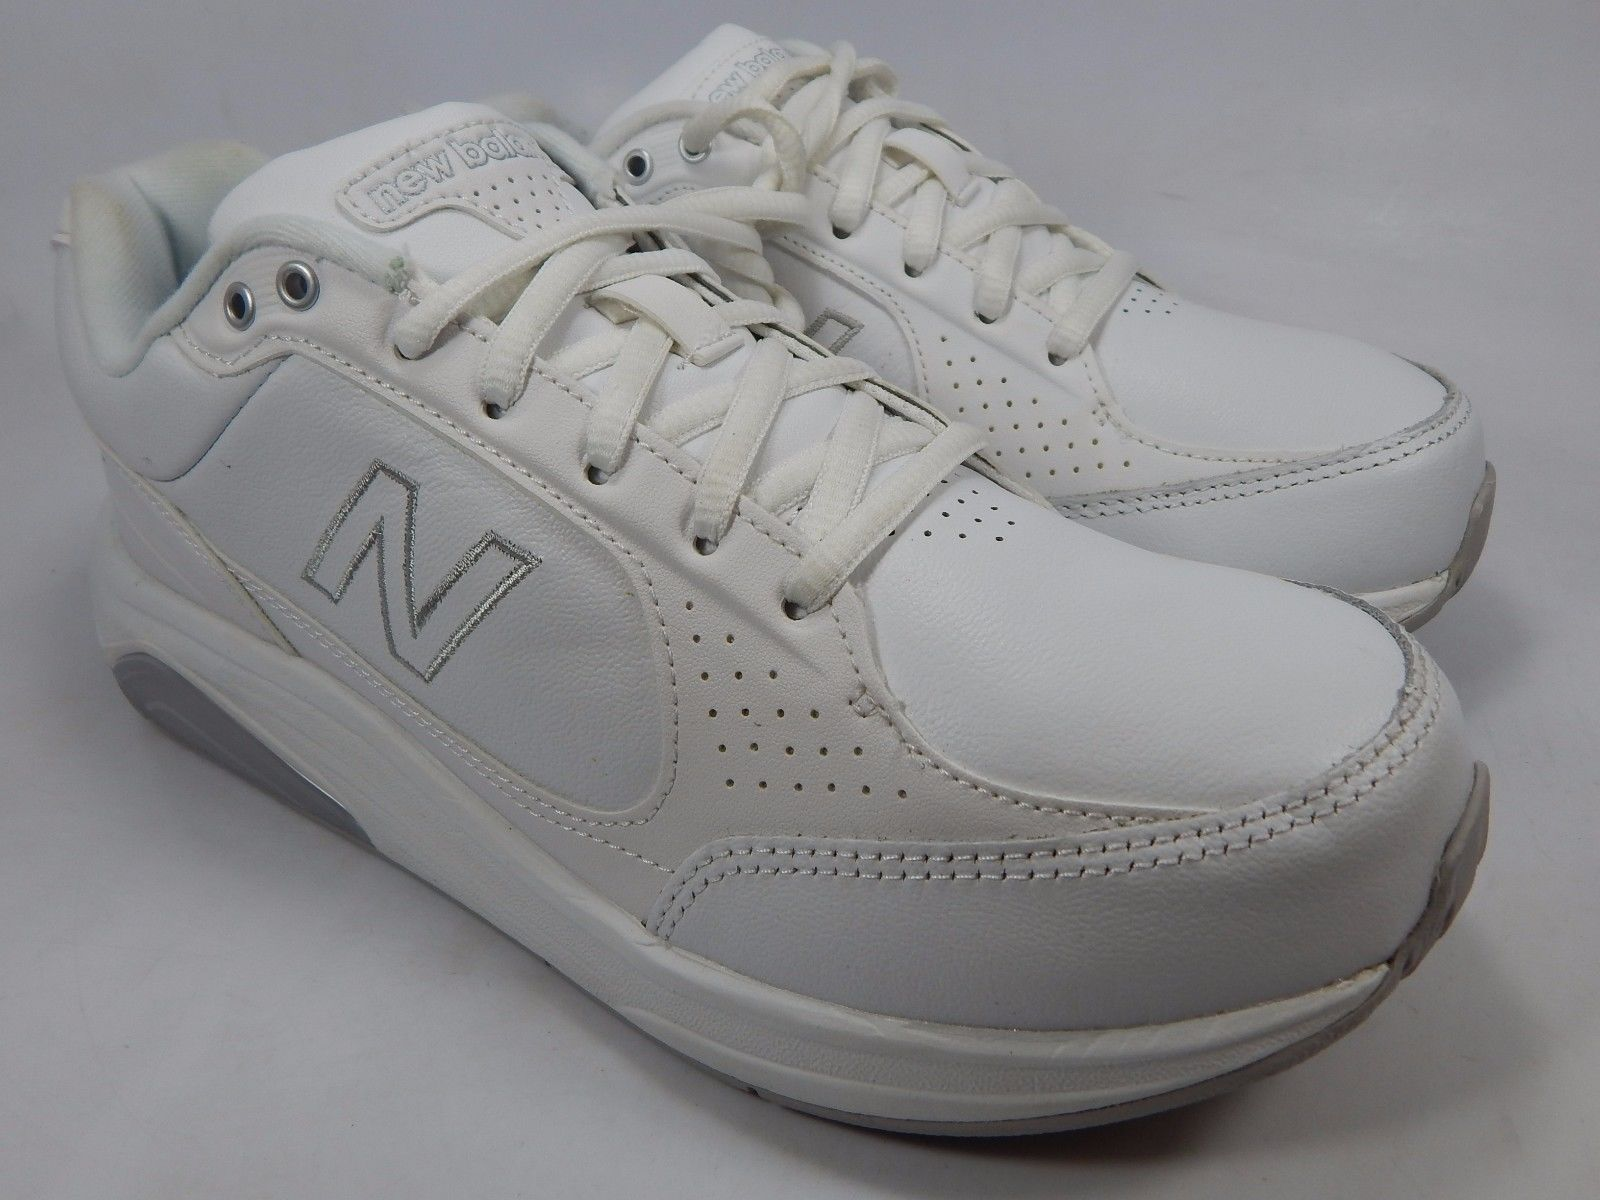 New Balance 928 Women's Walking Shoes Size US 7.5 2A NARROW EU 38 White WW928WT